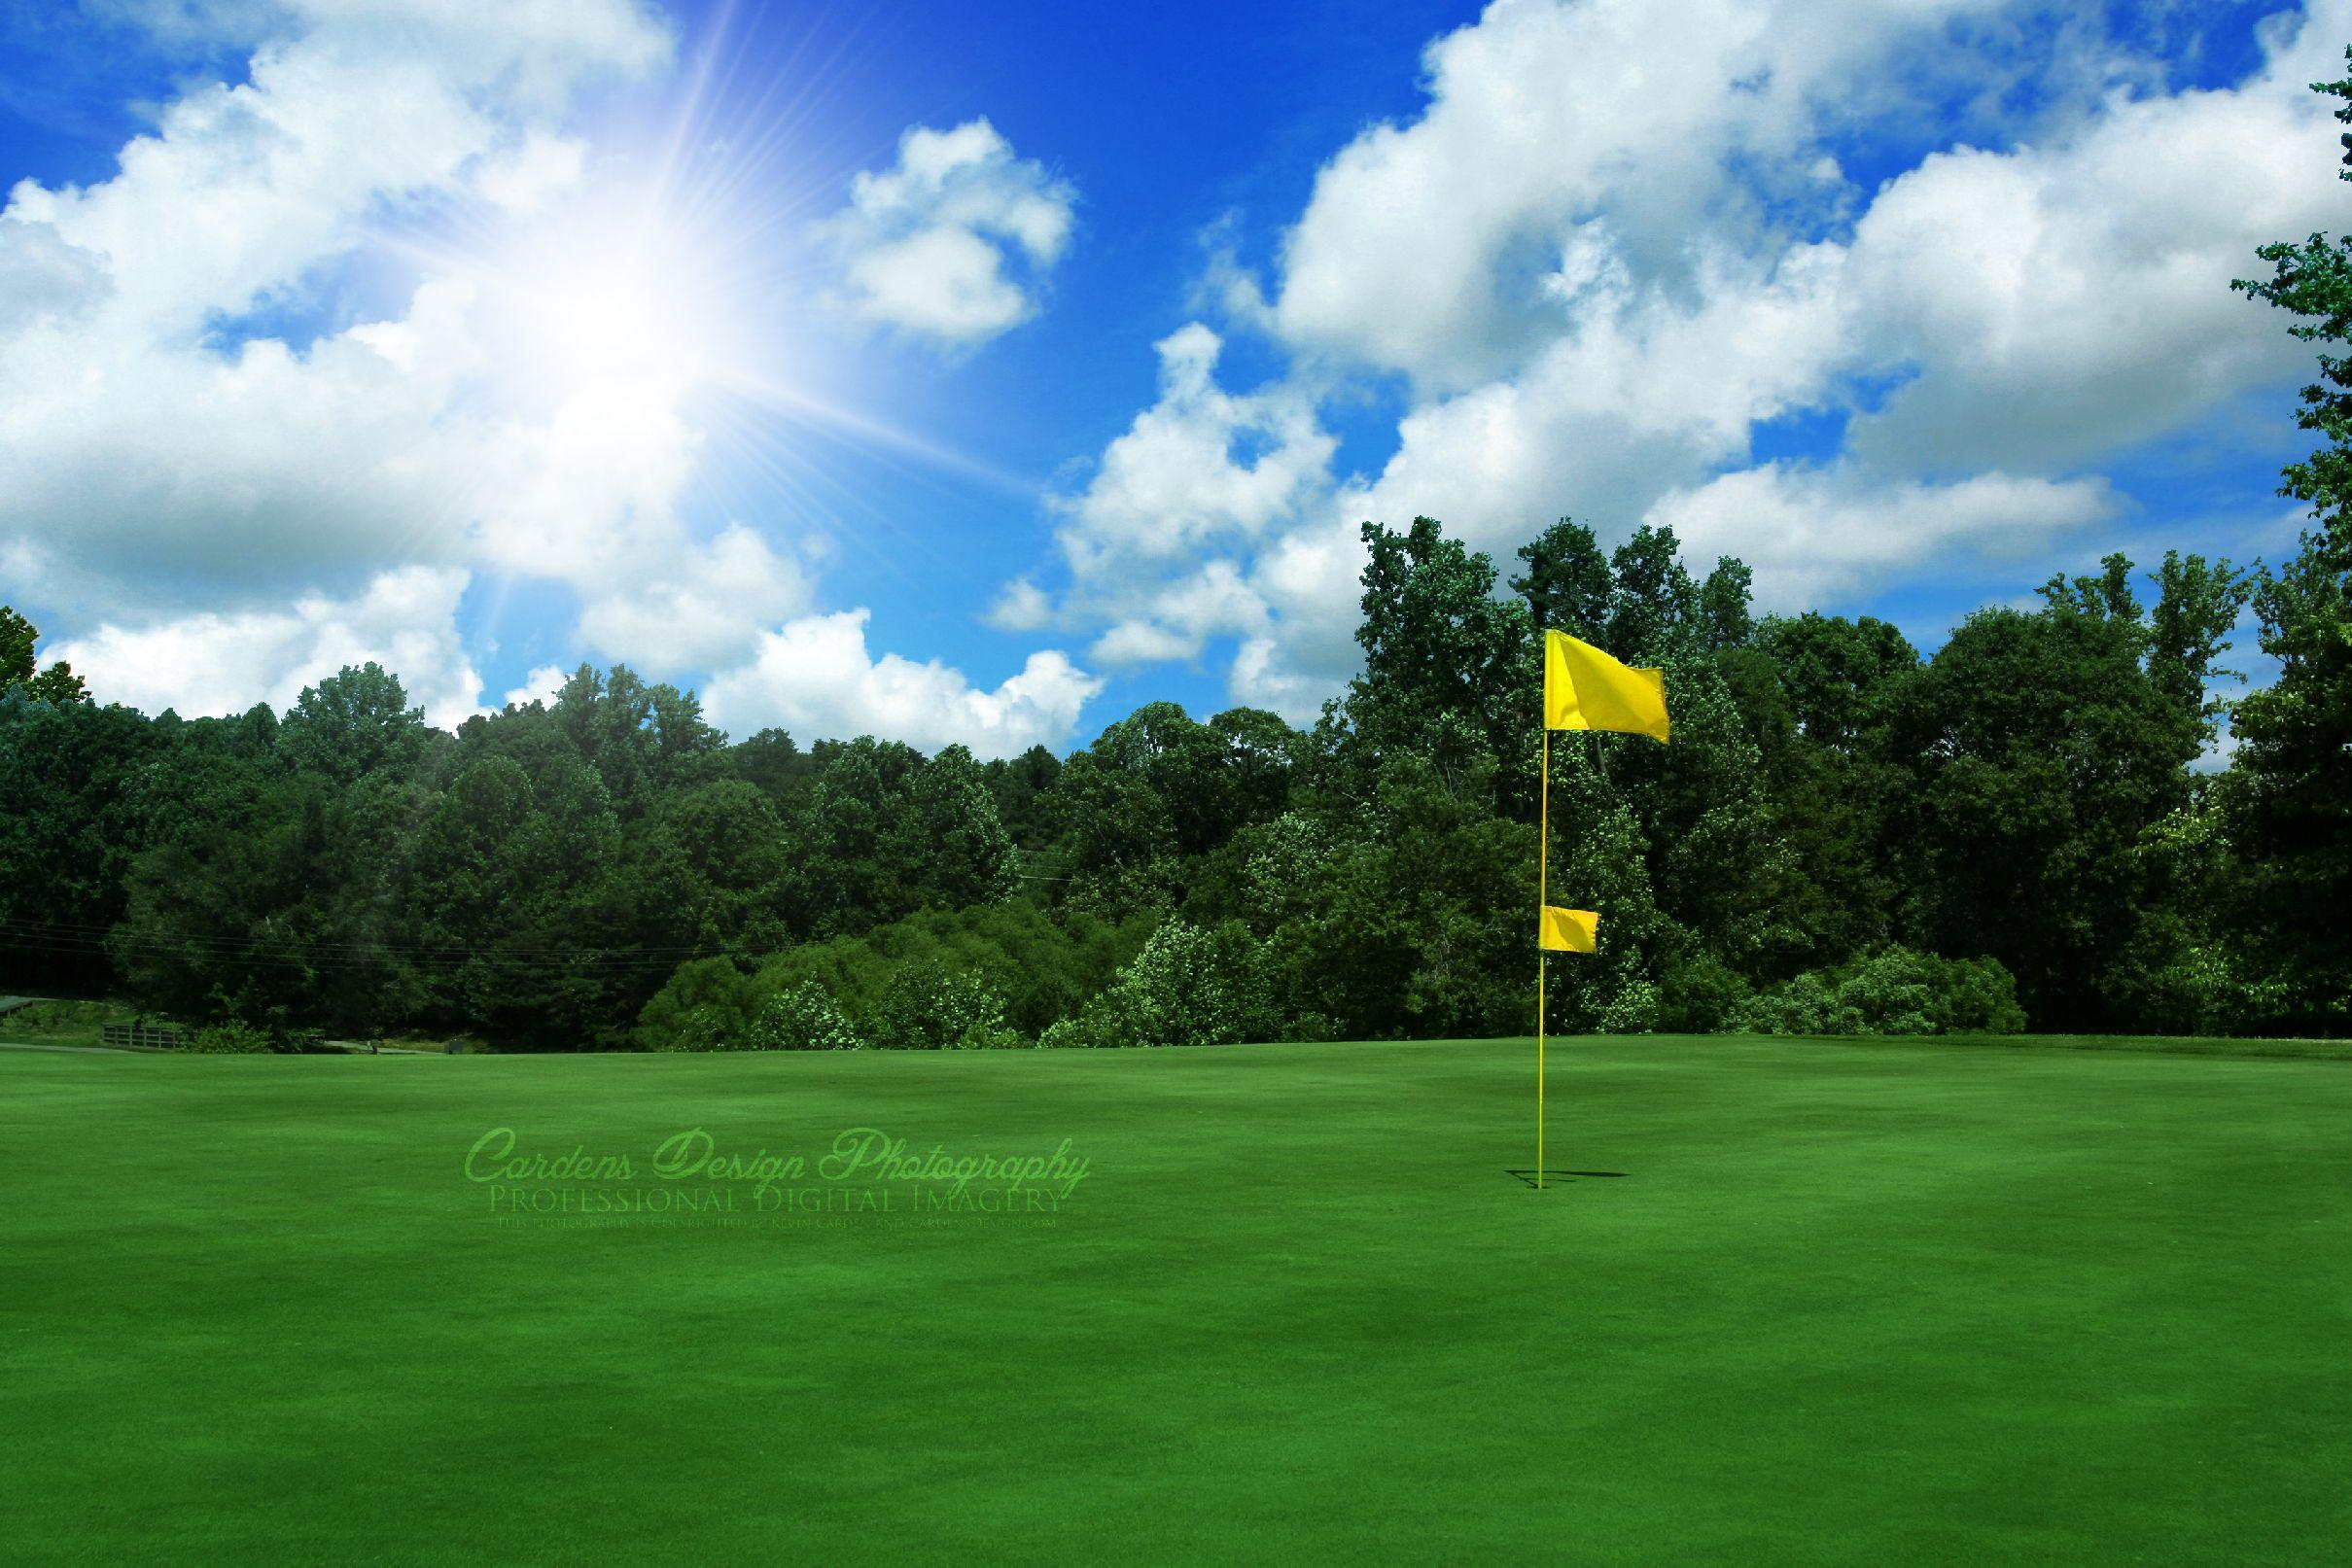 Golf Background Images